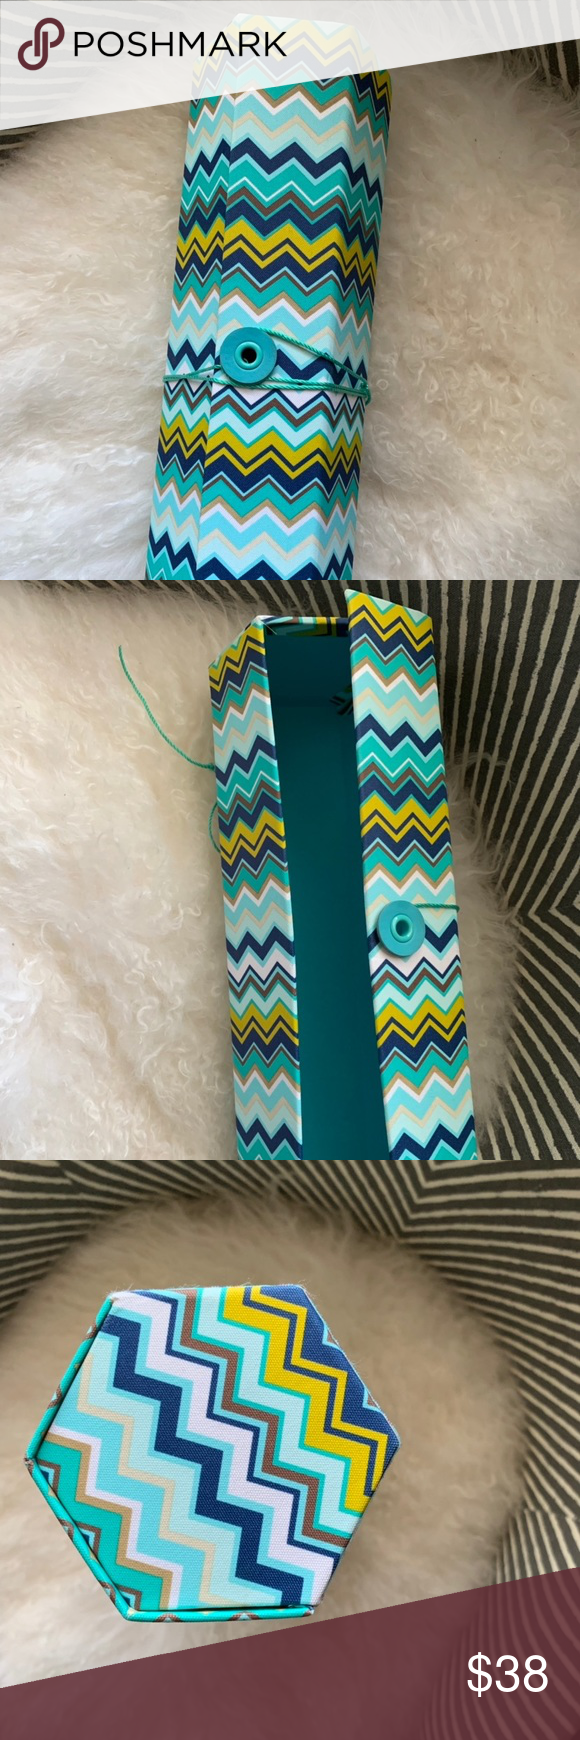 Missoni For Target Wine Gift Box Zigzag New Gorgeous Missoni For